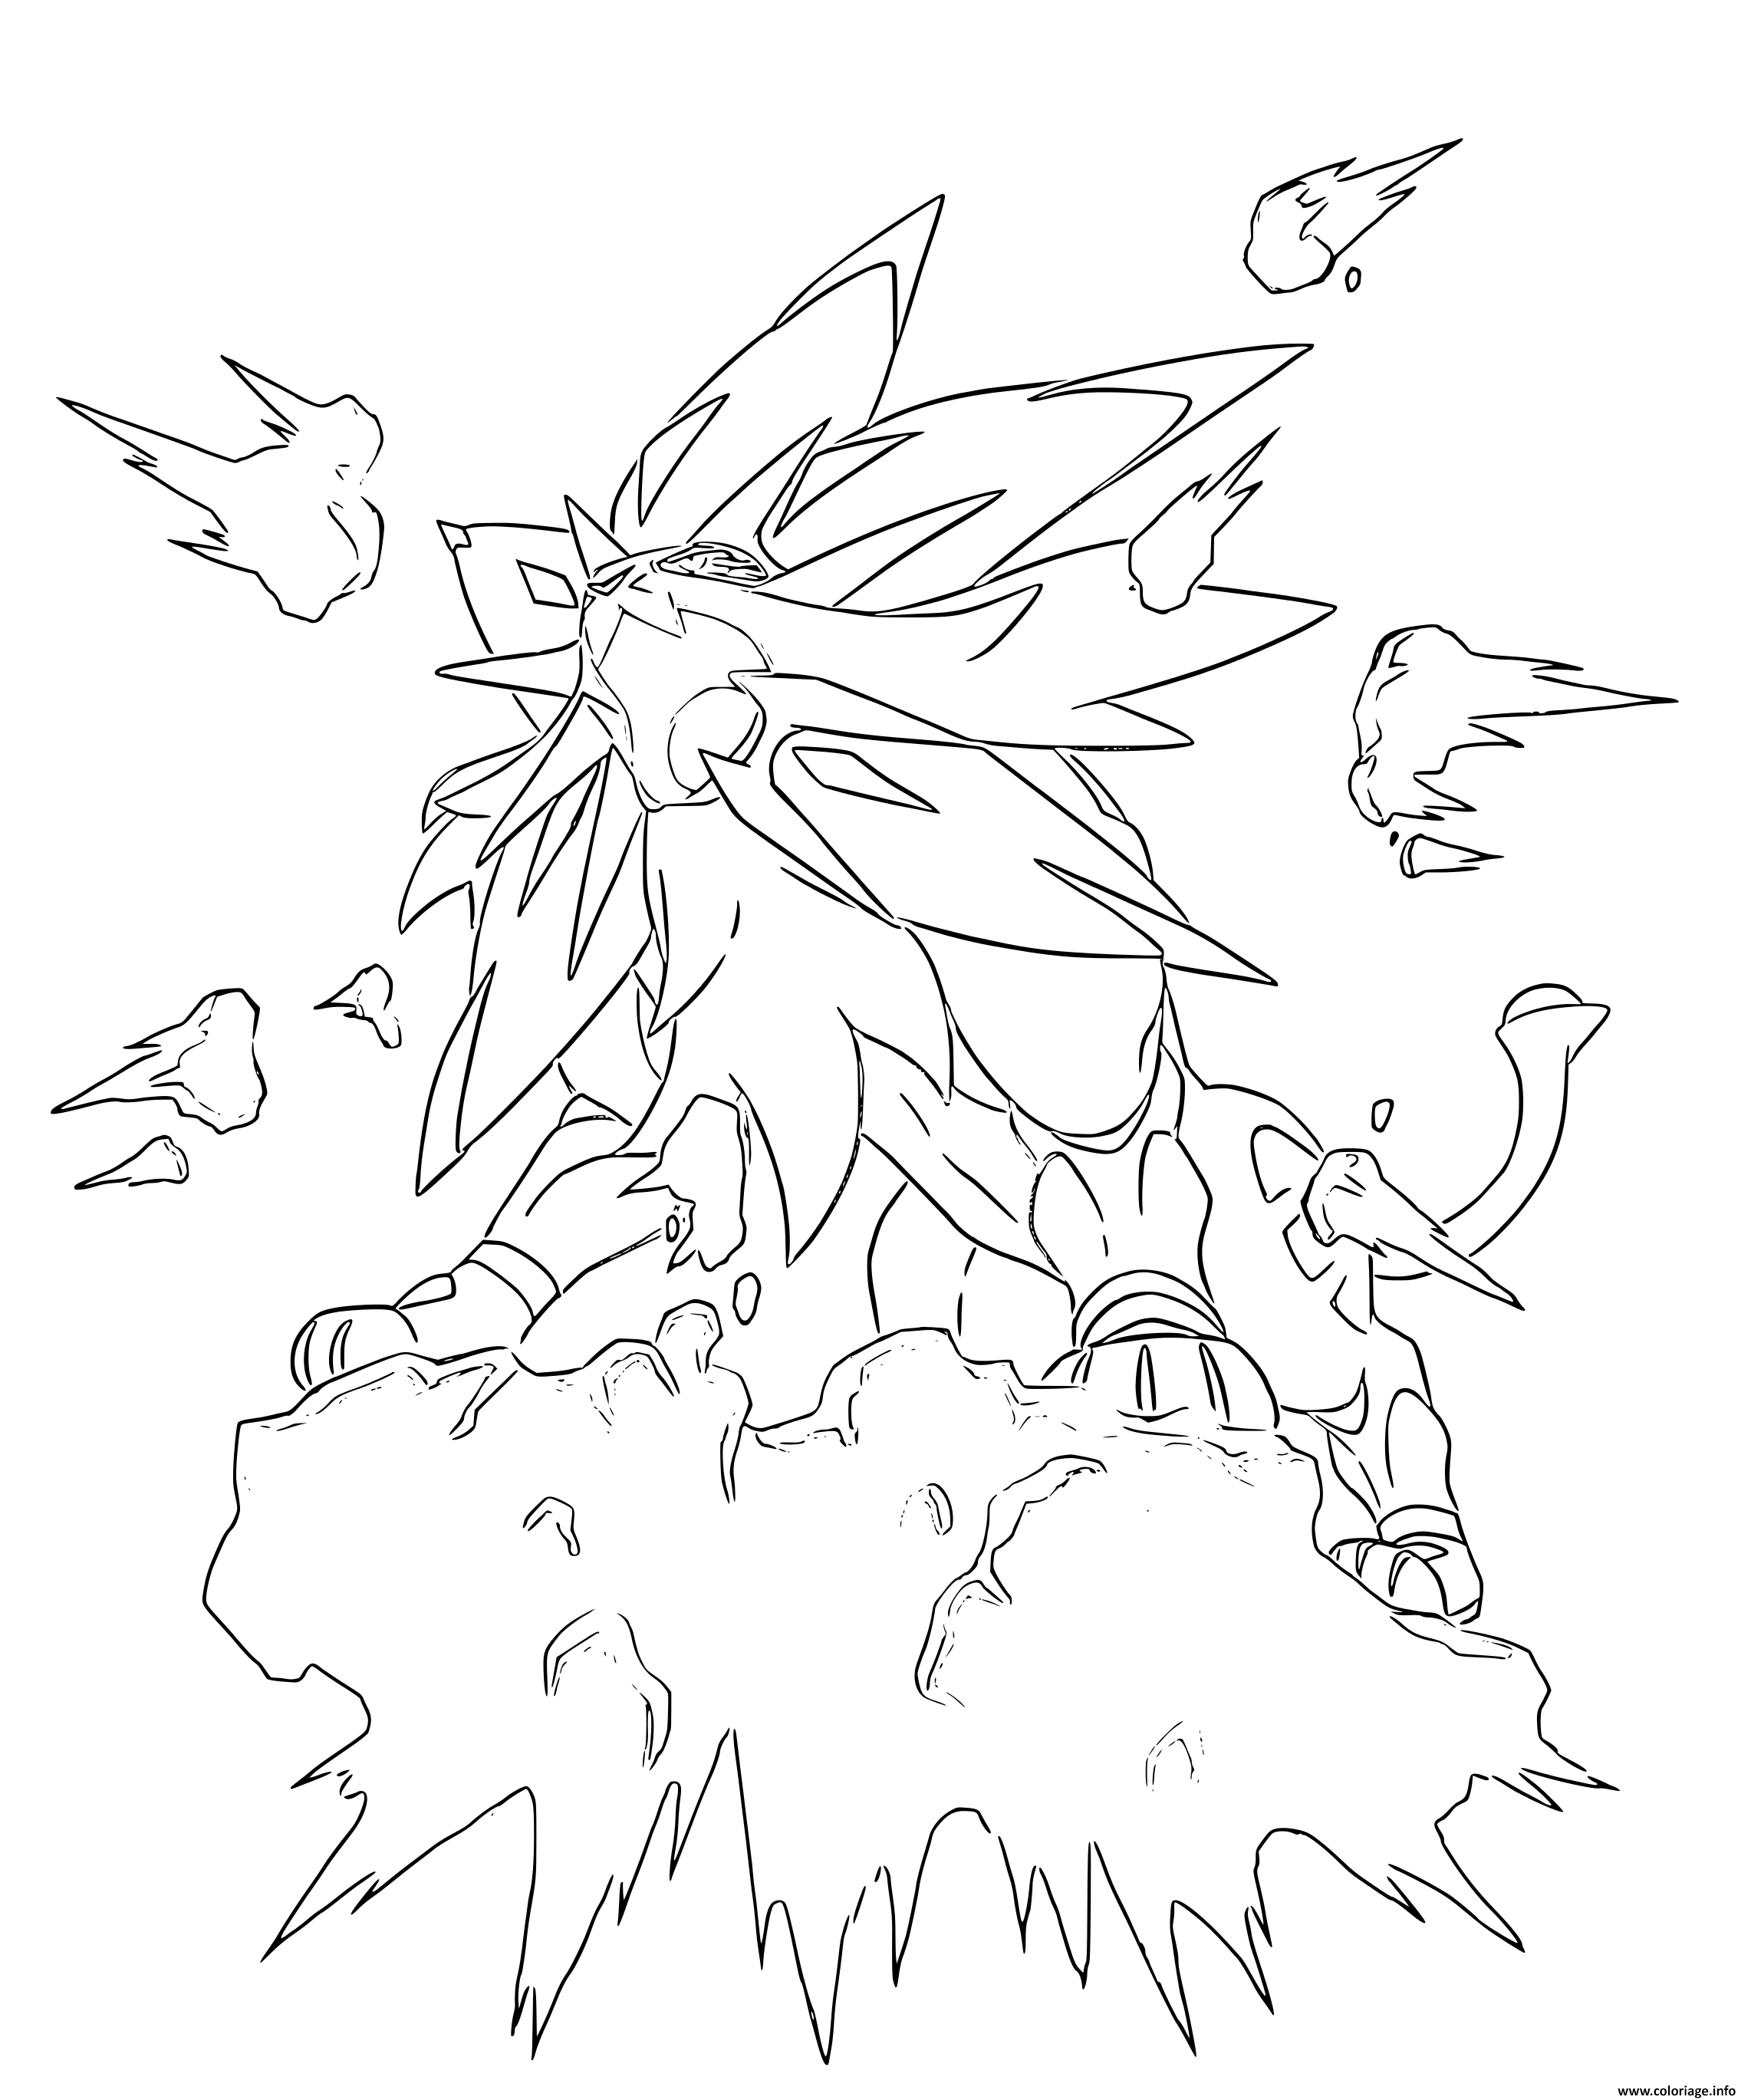 Coloriage solgaleo pokemon legendaire dessin - Coloriage pokemon legendaire a imprimer ...